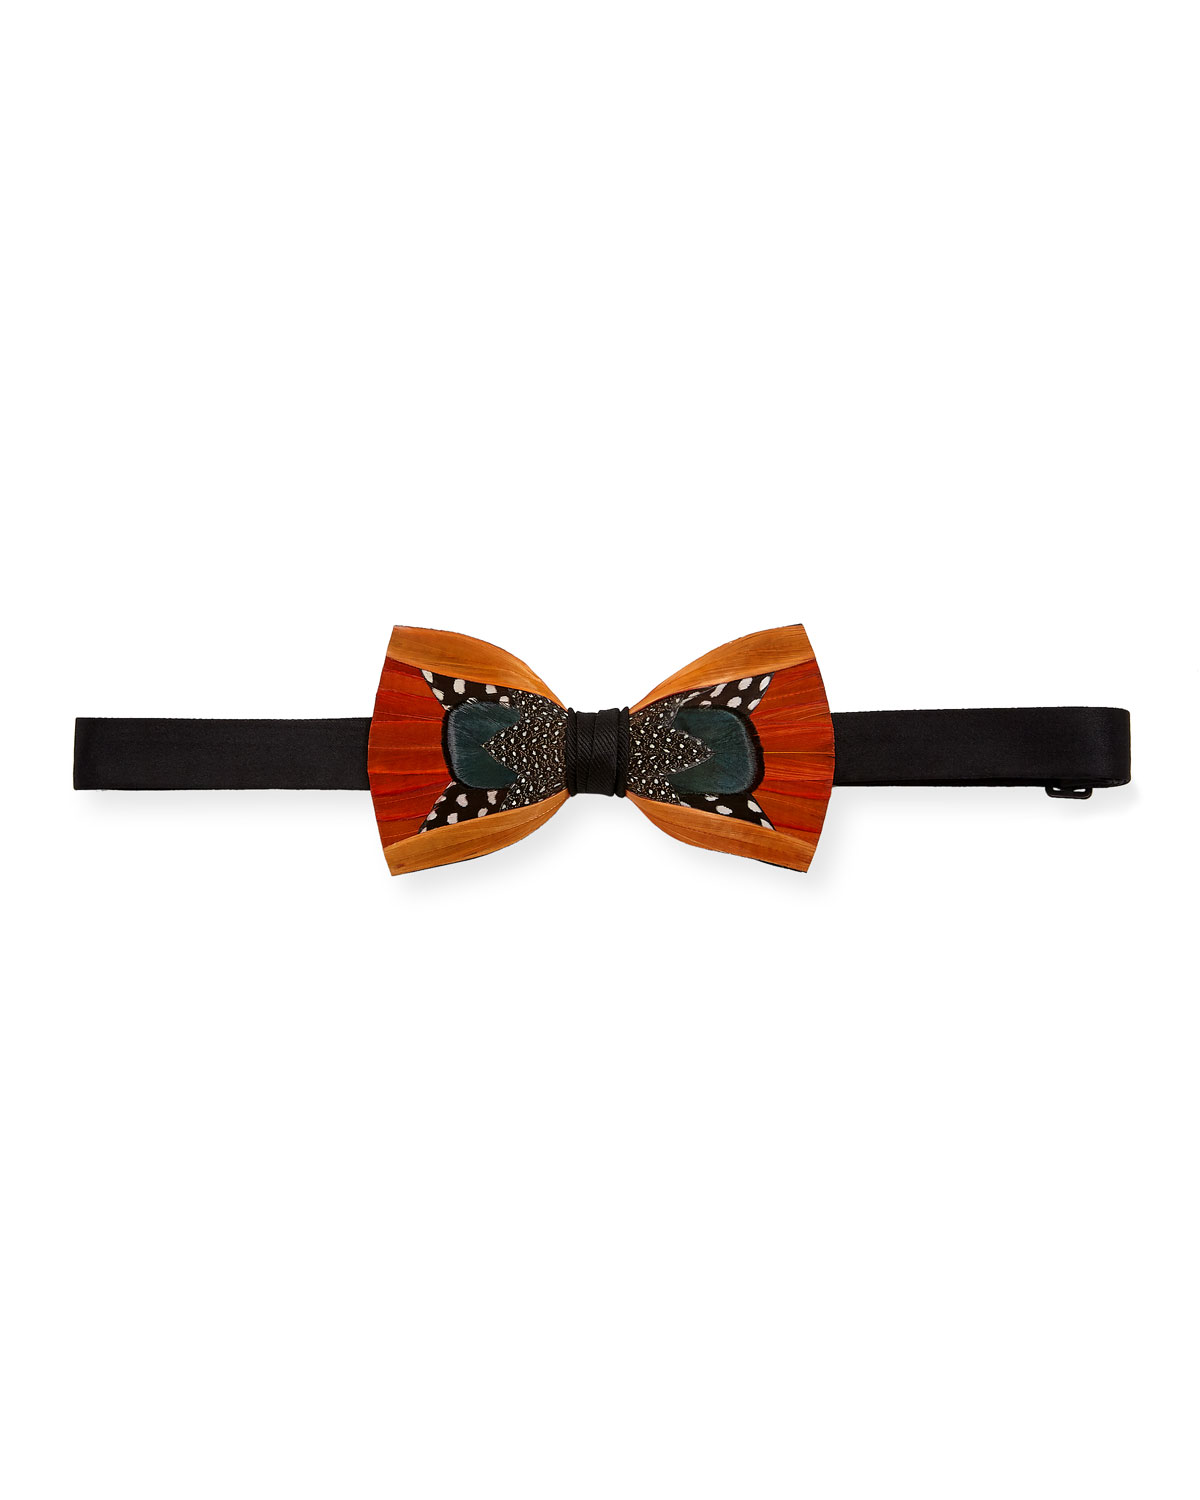 BRACKISH BOWTIES TRIFECTA FEATHER FORMAL BOW TIE